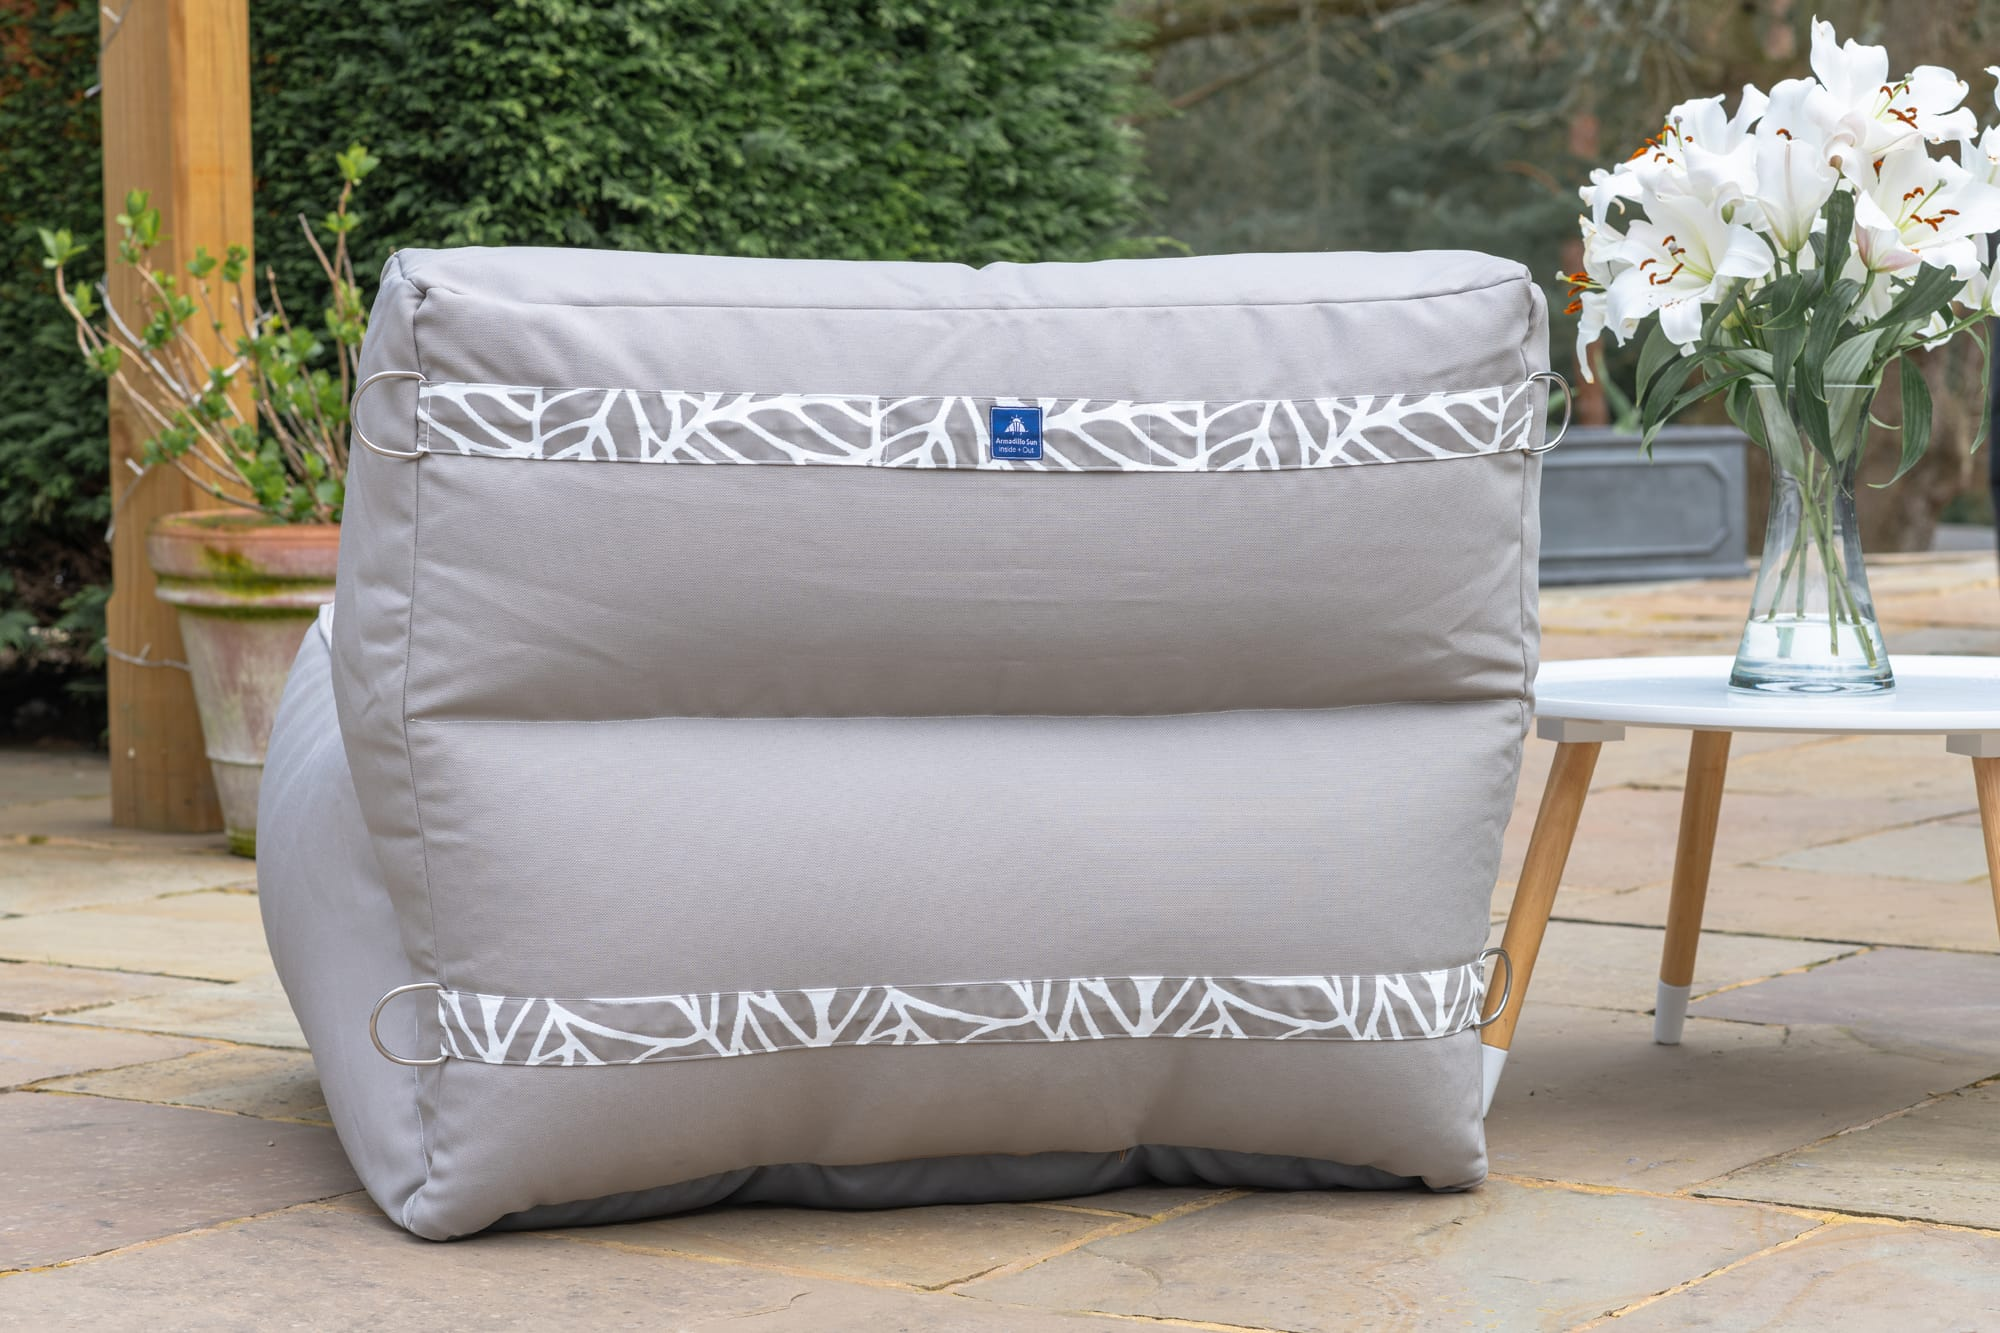 Adult Monaco Modular Bean Bag Chair in Pumice Grey with Palm Patterned Straps